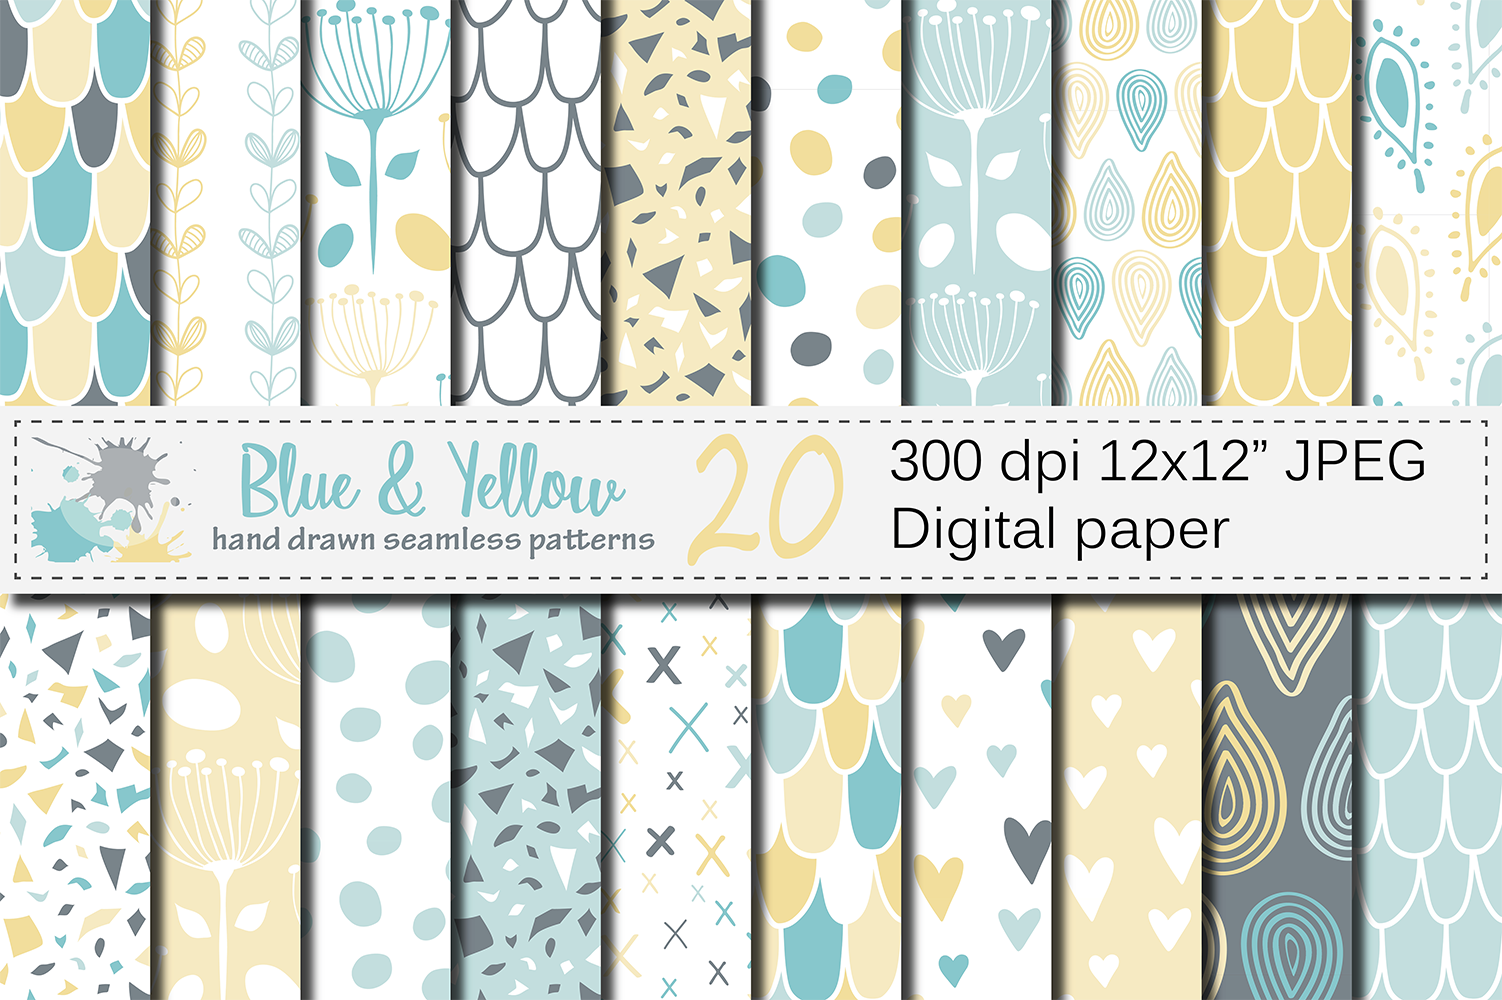 Blue and Yellow Seamless Digital Paper Graphic Patterns By VR Digital Design